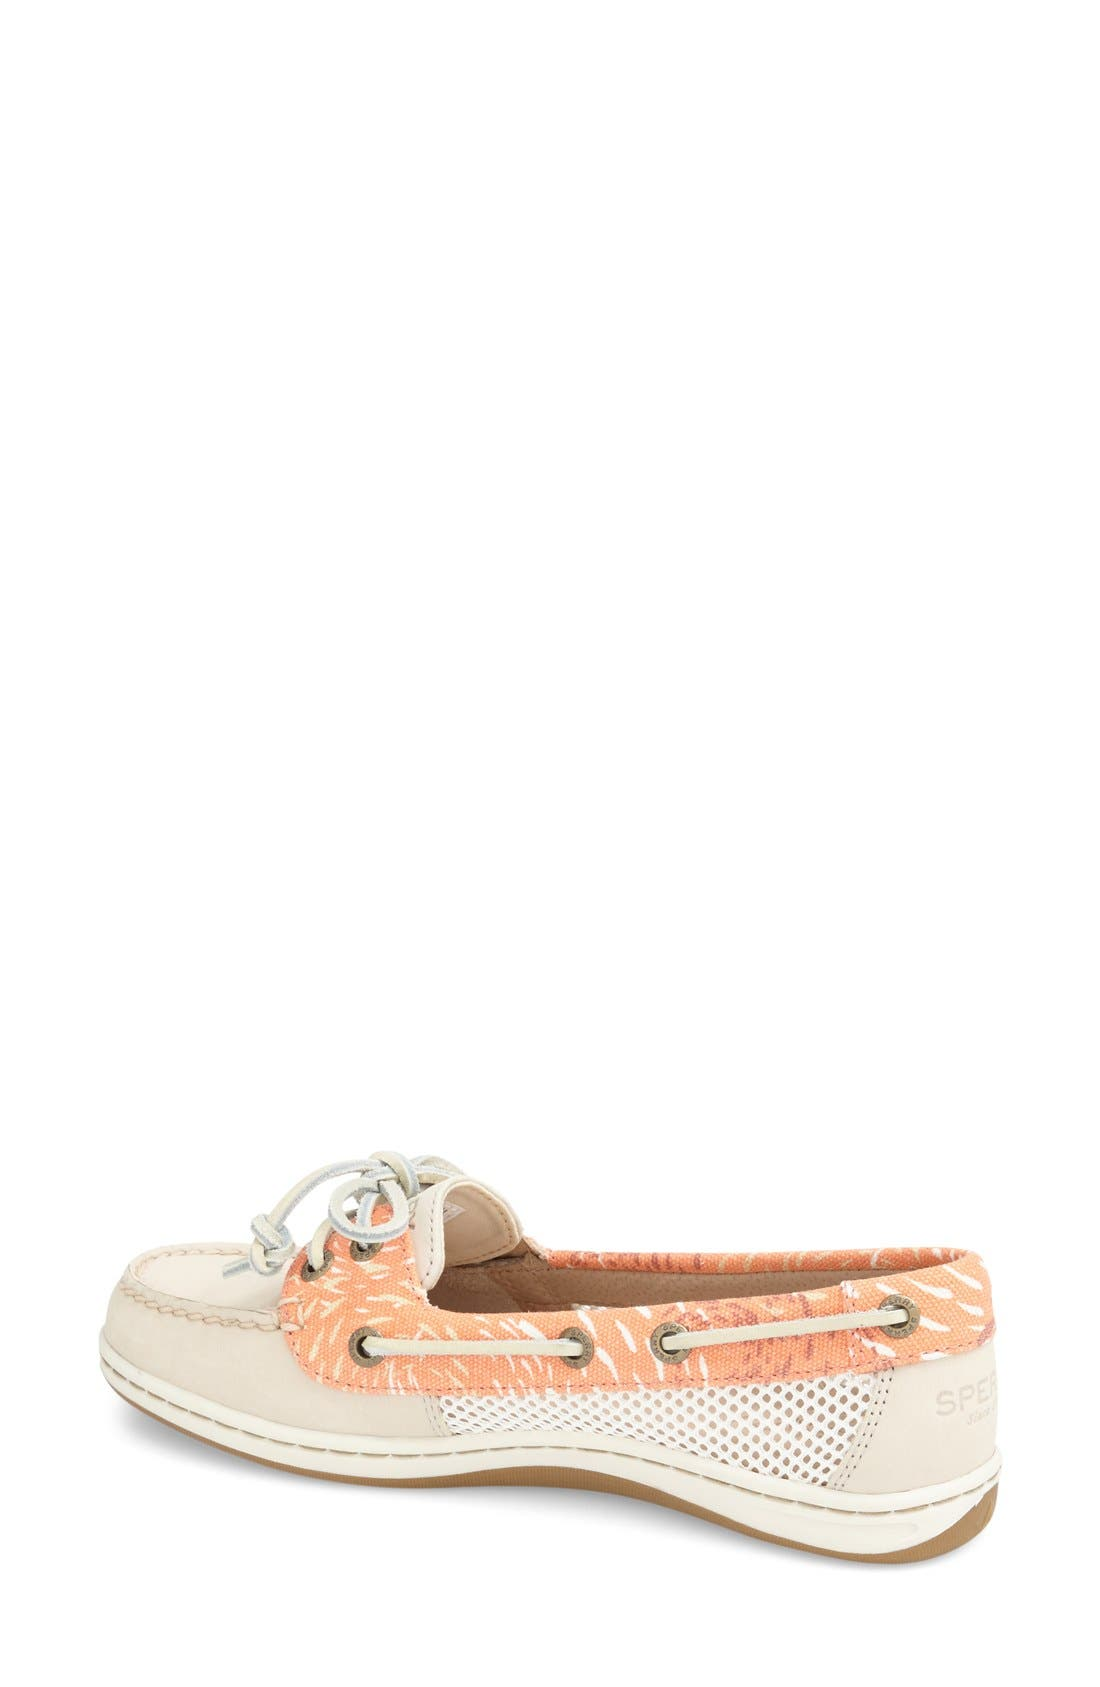 'Firefish' Boat Shoe,                             Alternate thumbnail 18, color,